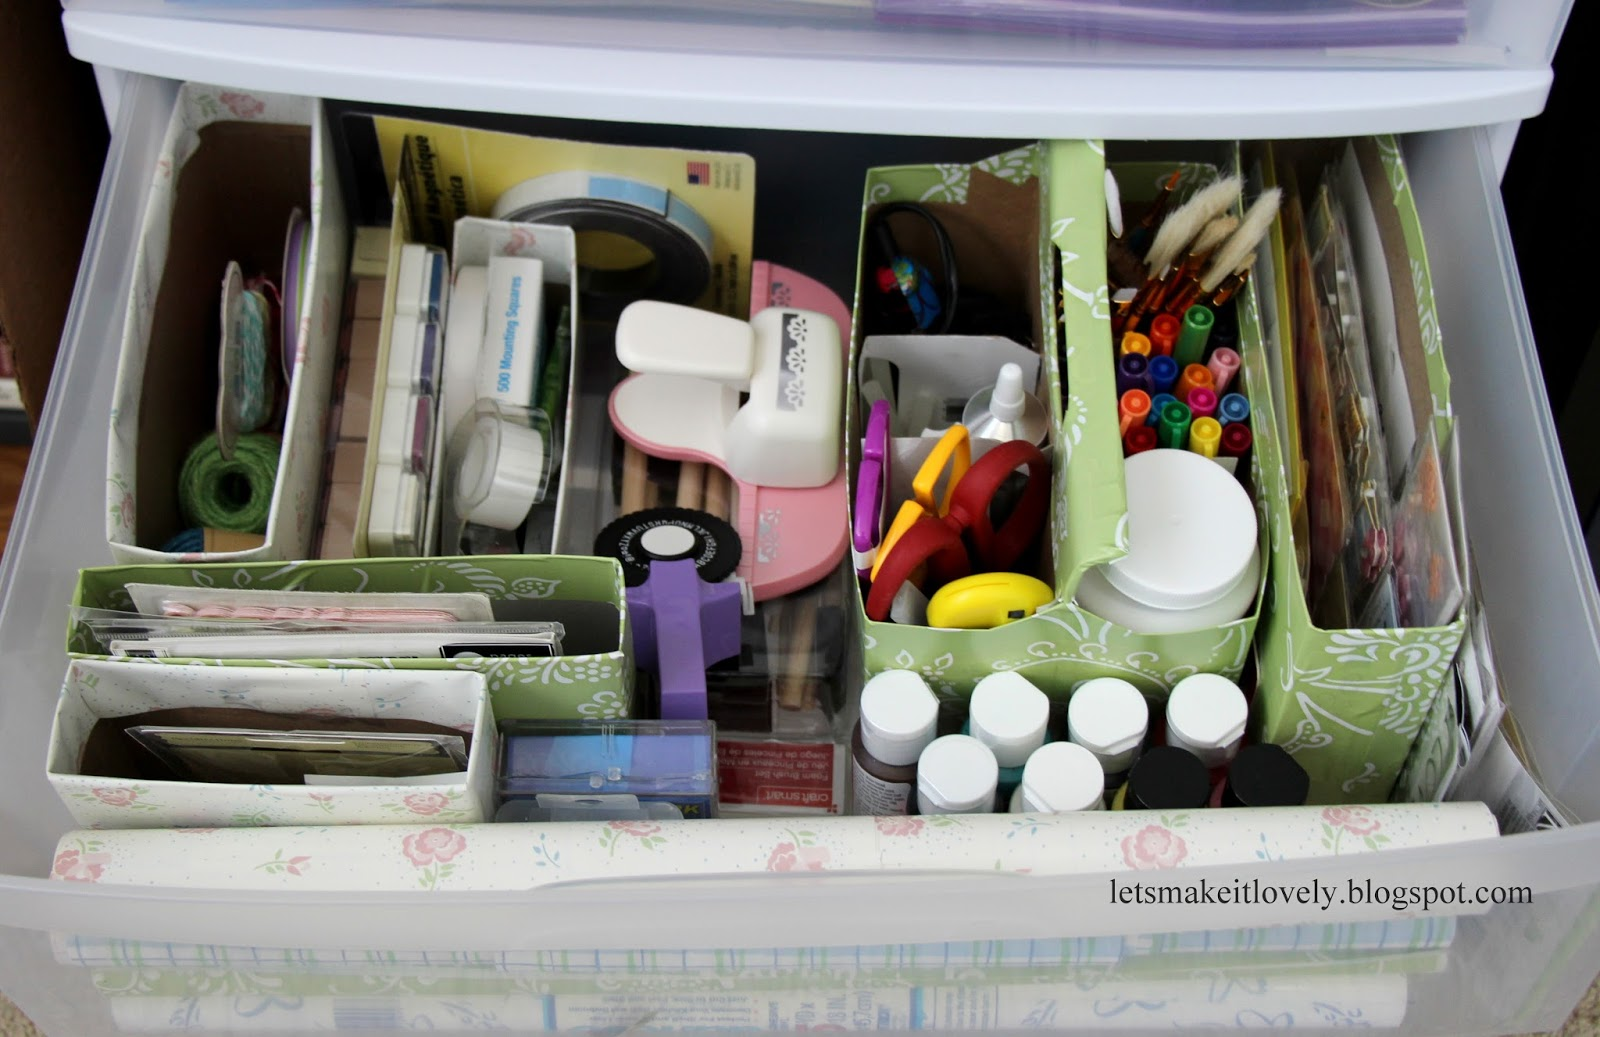 Reuse Six Pack Bottle Carrier and Cereal Boxes to Organize